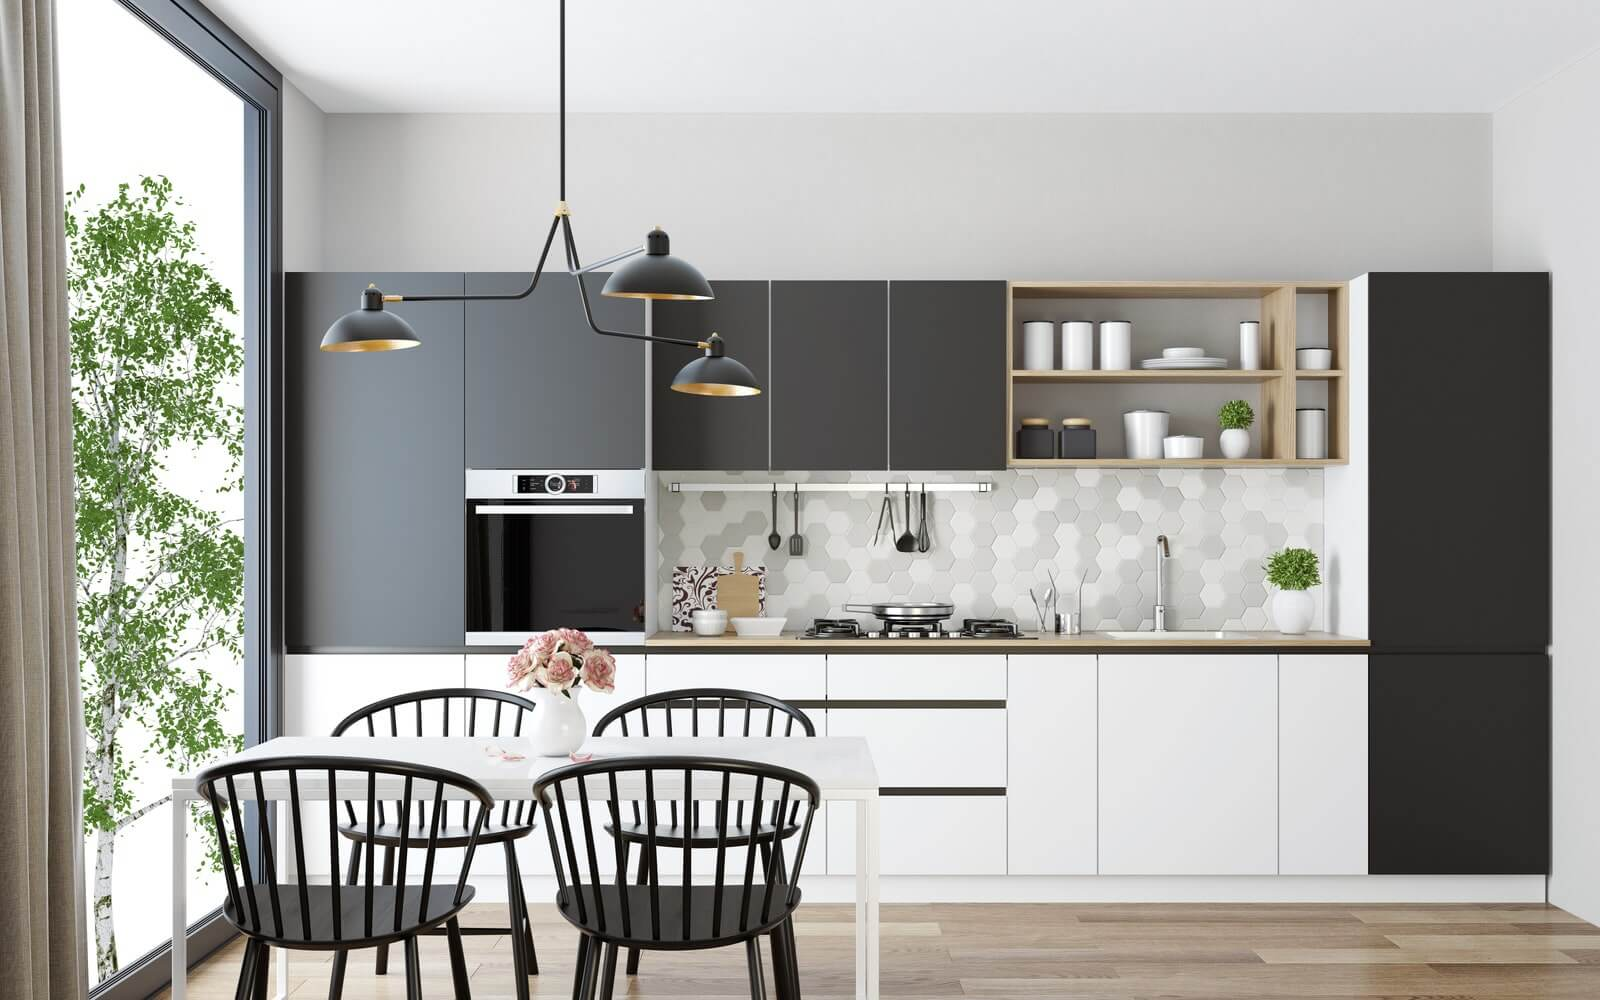 THREE IN ONE PENDANT LIGHTING IDEAS FOR SMALL DINING ROOM